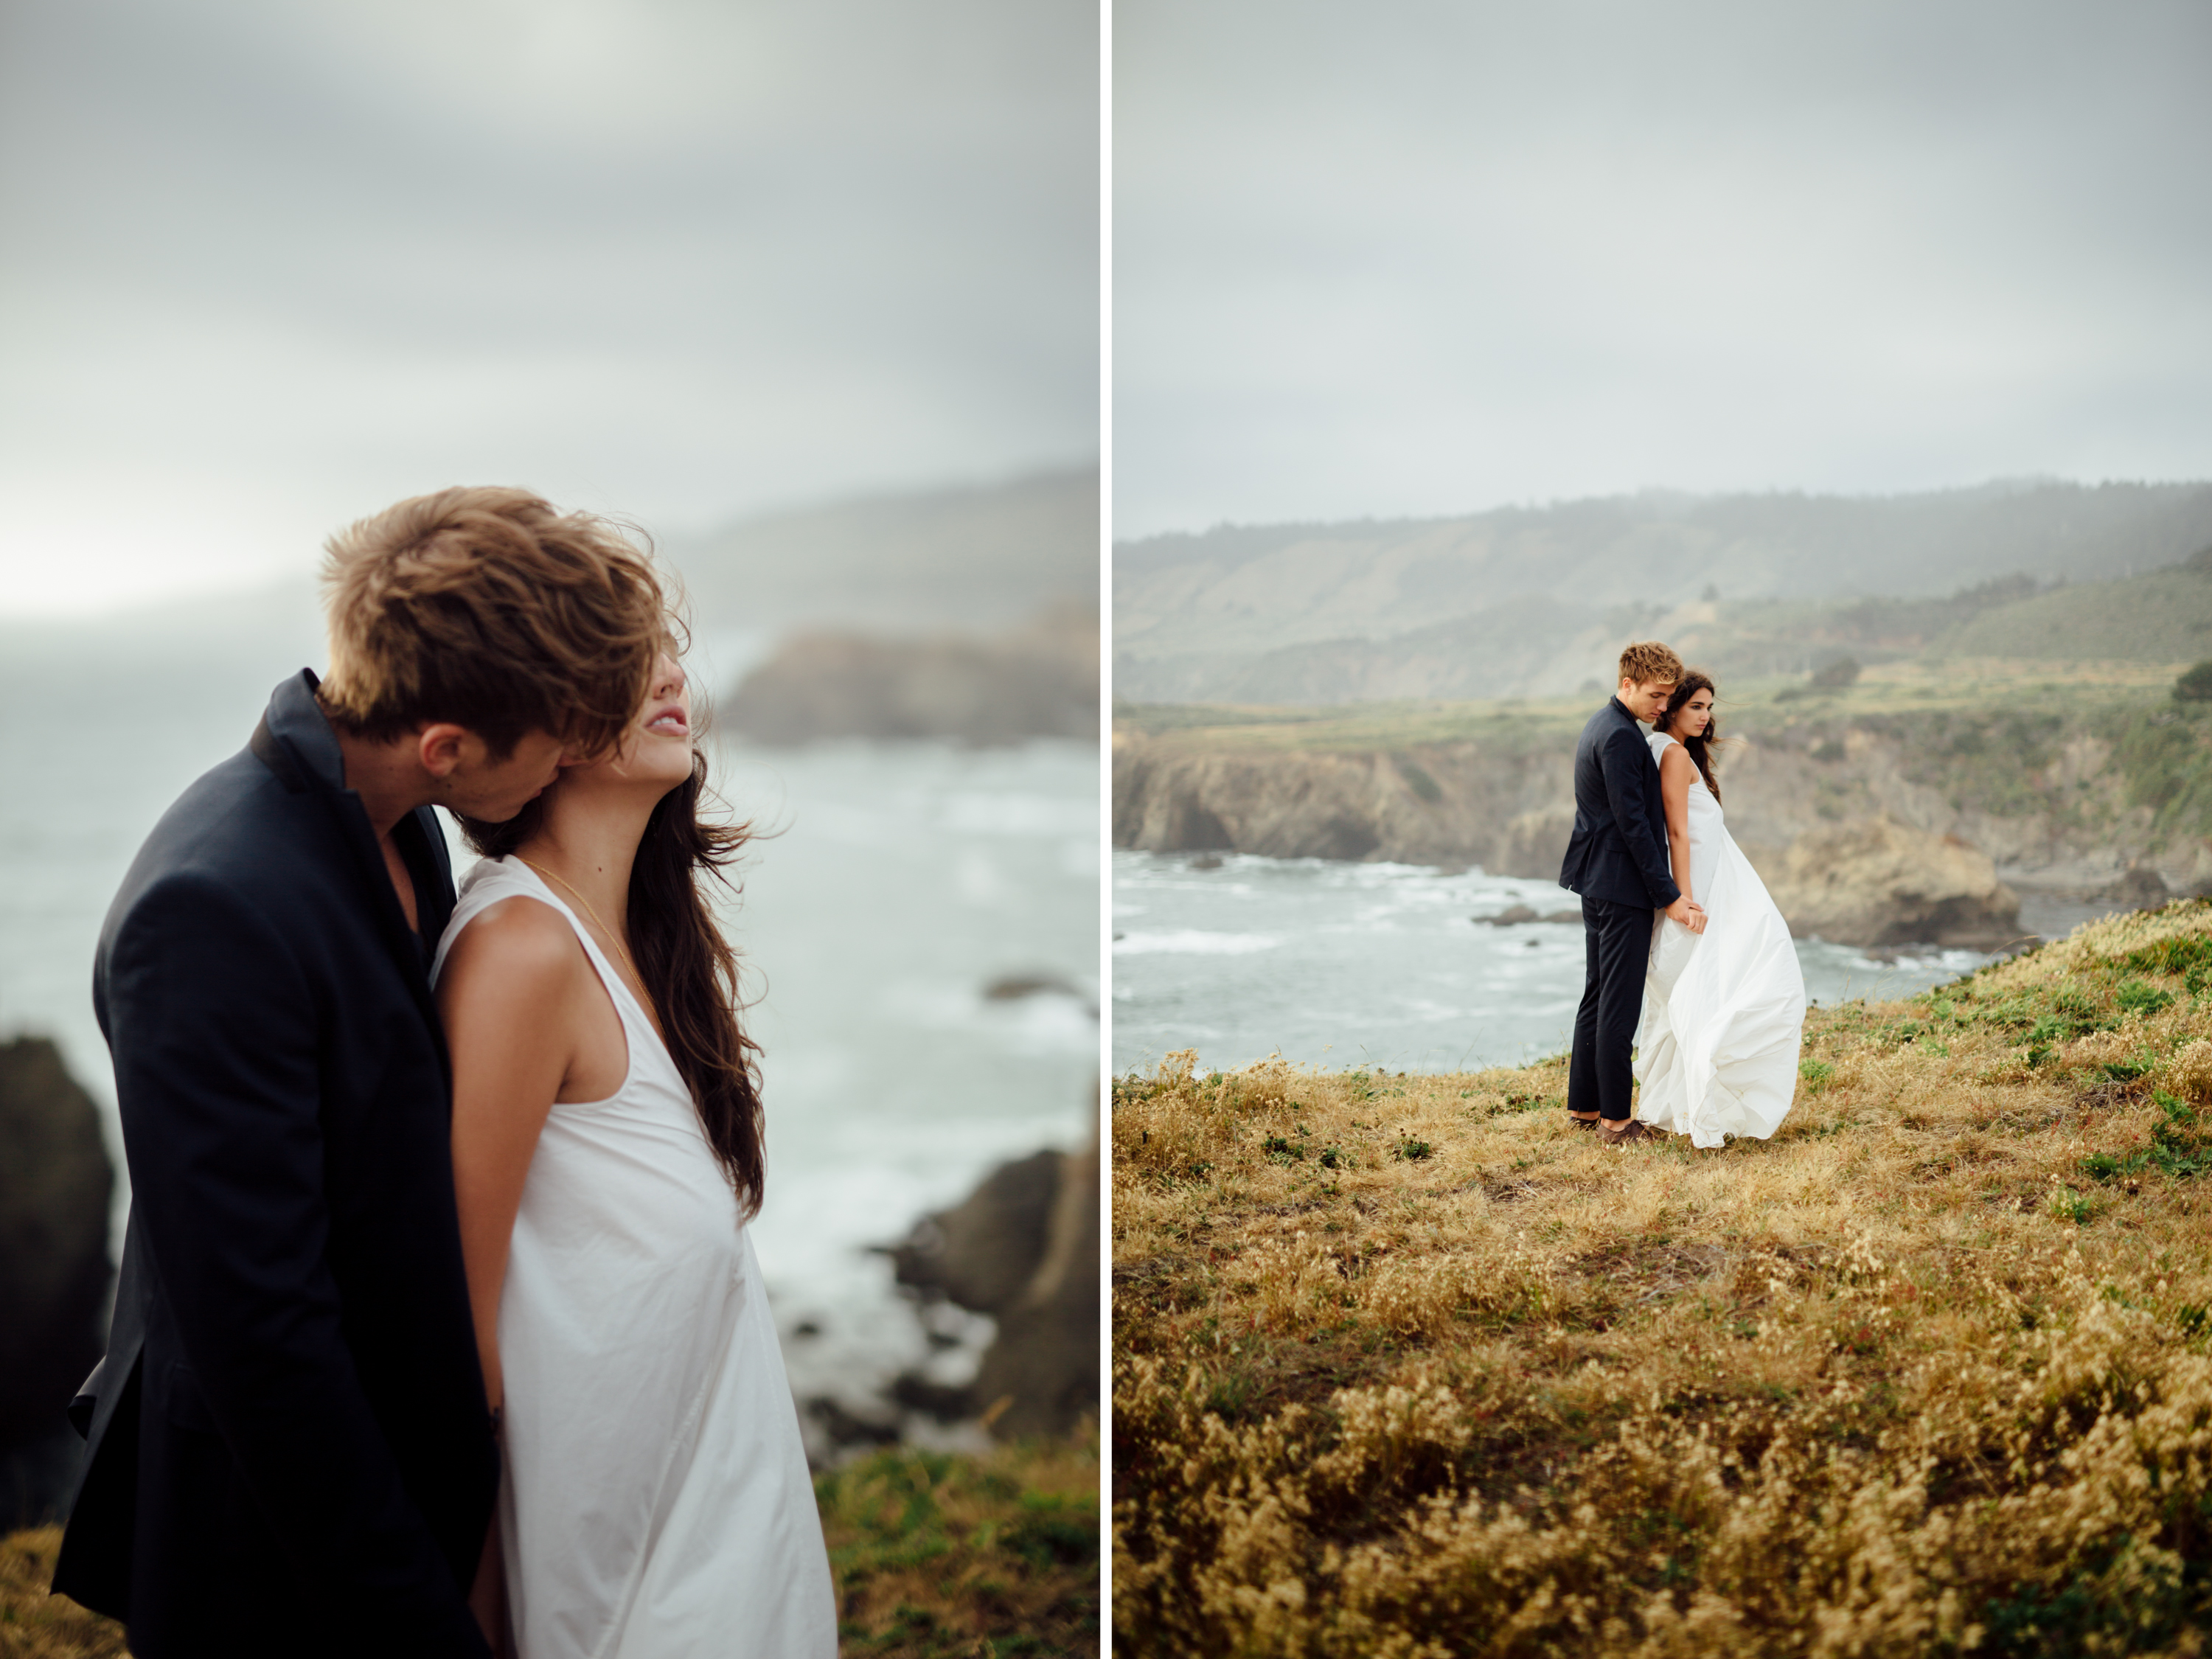 California-Wedding-Photography-by-Artur-Zaitsev-12